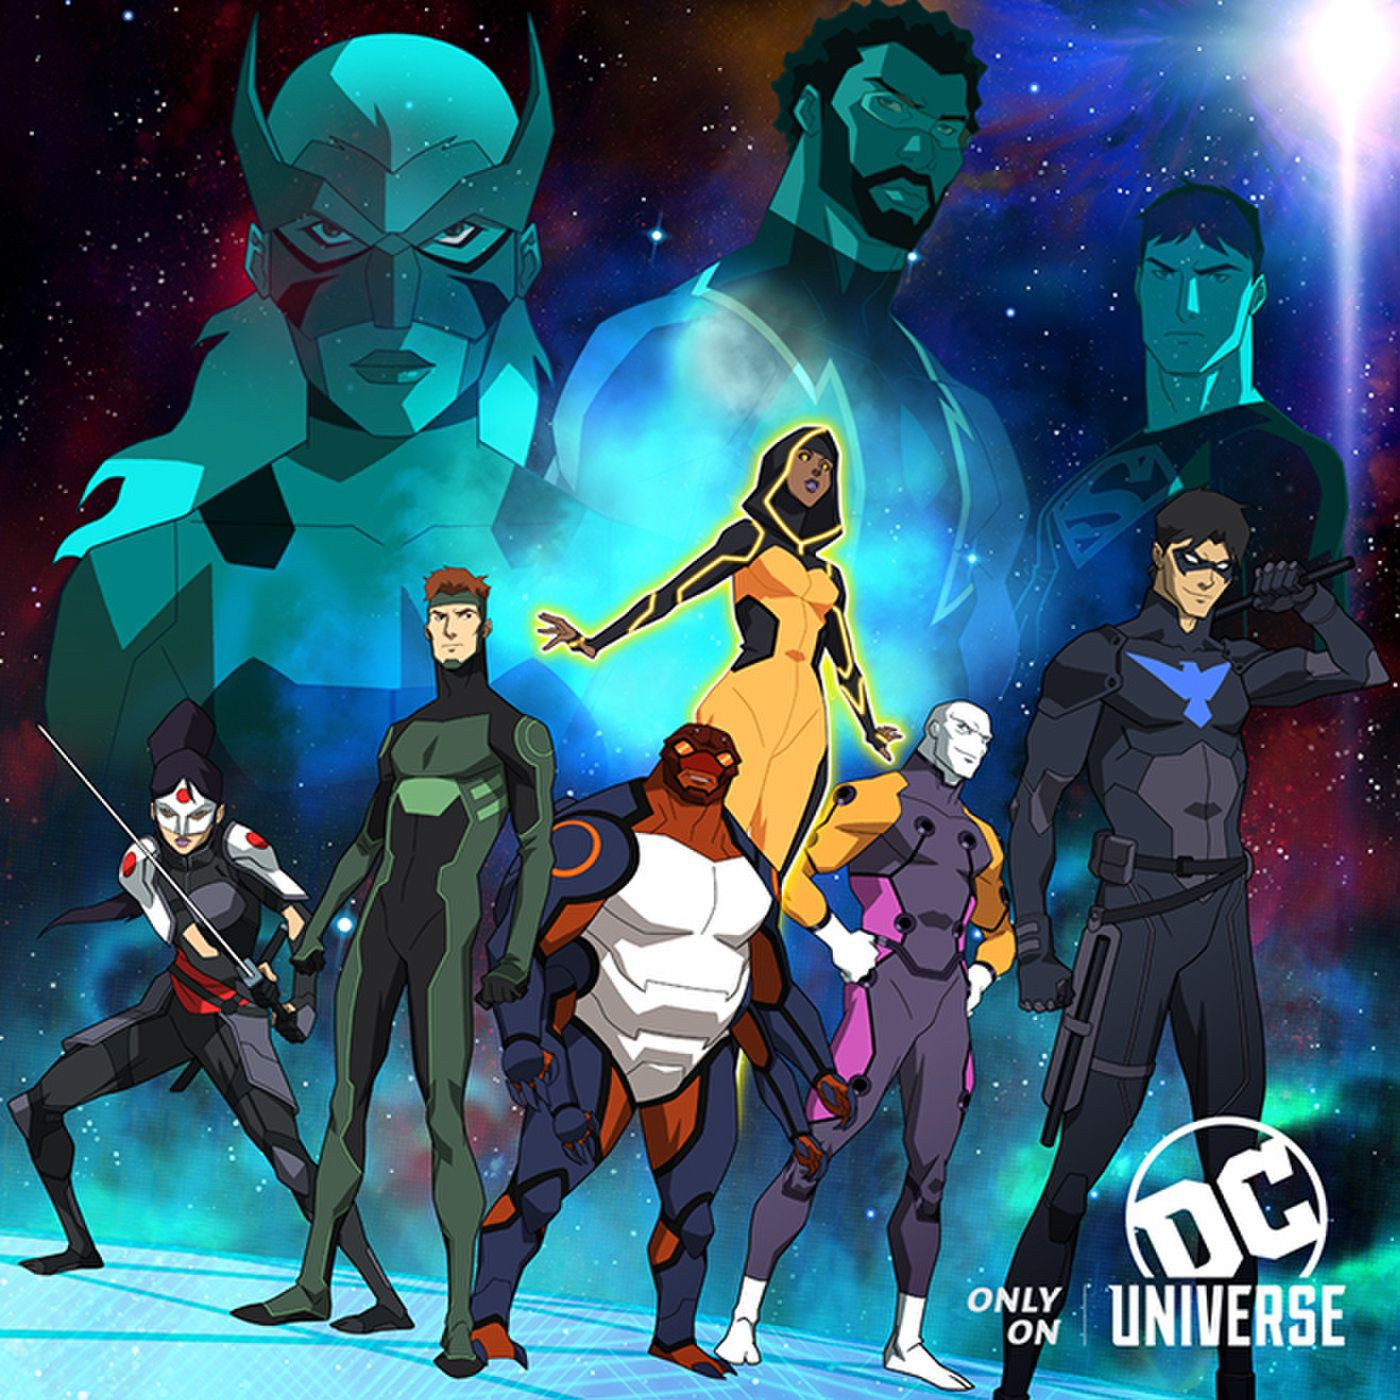 Young Justice season 3 trailer teases Apokolips, premiere